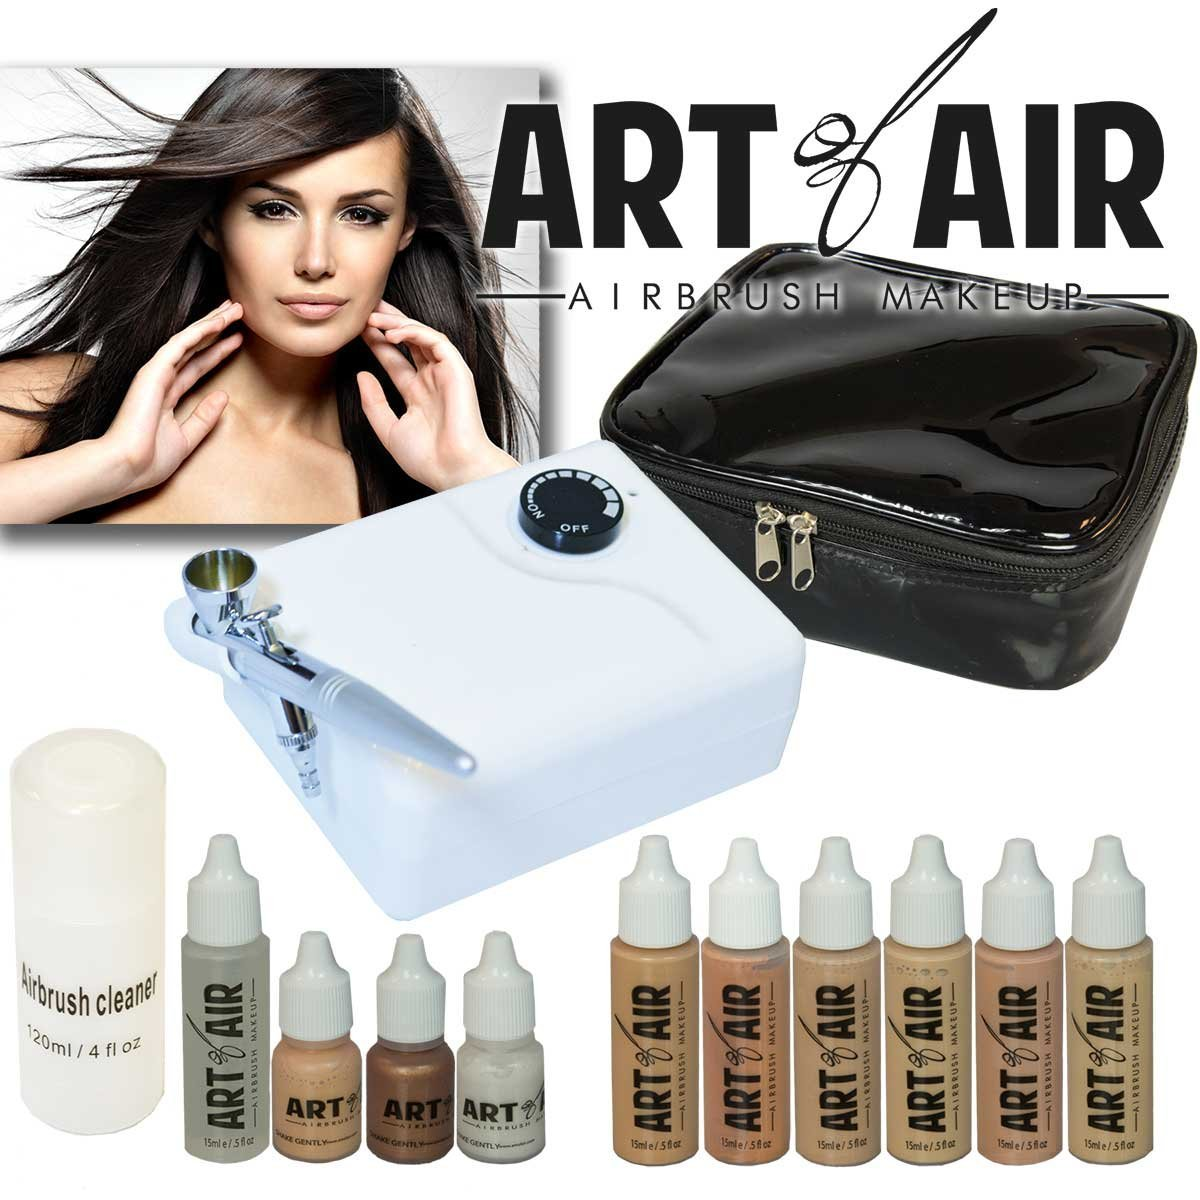 The Art of Air makeup kit offering is one that is perfectly suited for beginners who are purchasing a new kit for the first time.